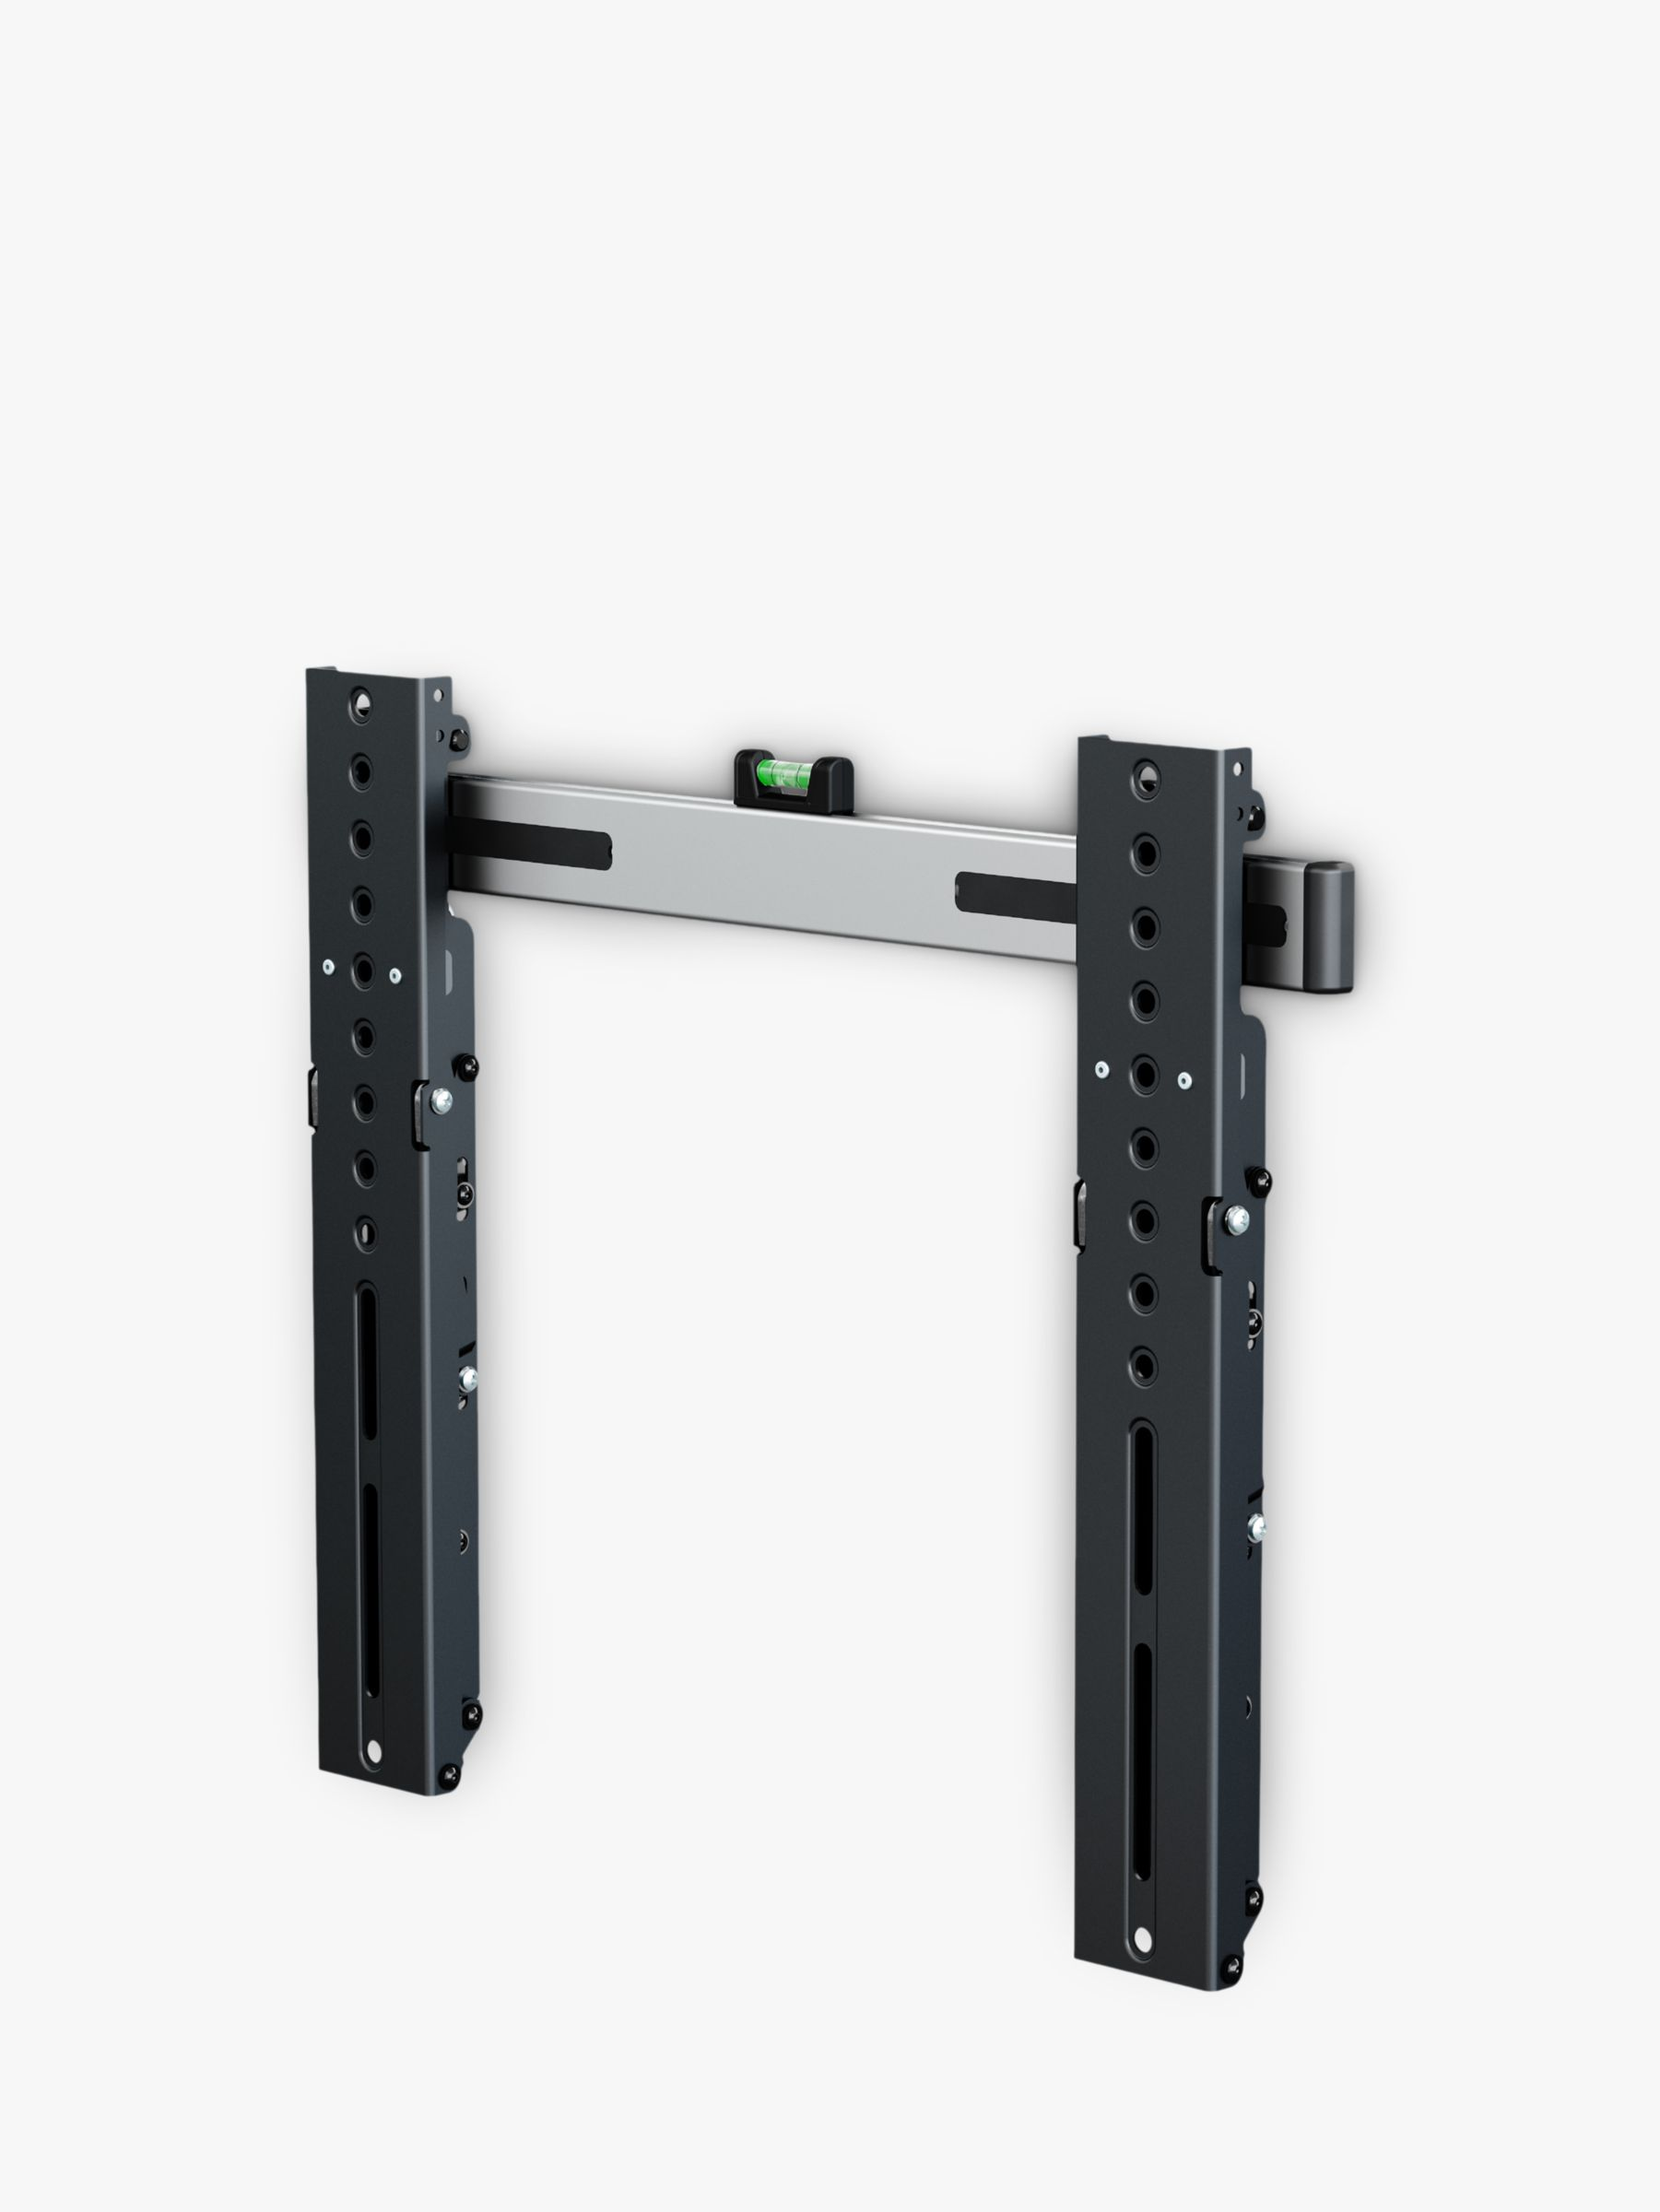 AVF AVF JXPL401 Tilting Wall Mount for TVs up to 55